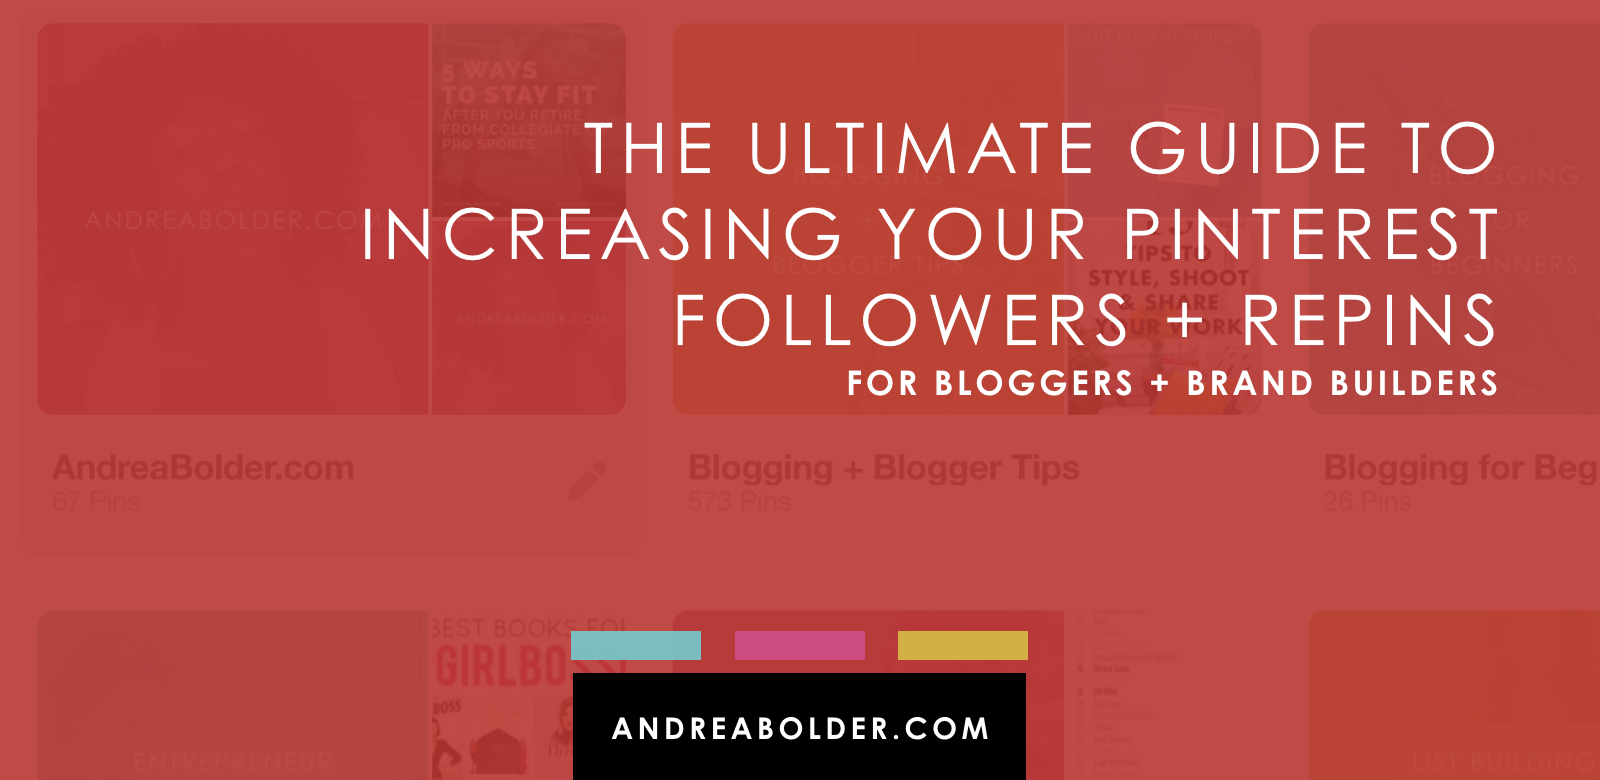 THE ULTIMATE GUIDE TO MORE PINTEREST FOLLOWERS + REPINS | PLUS FREE PINTEREST CHALLENGE